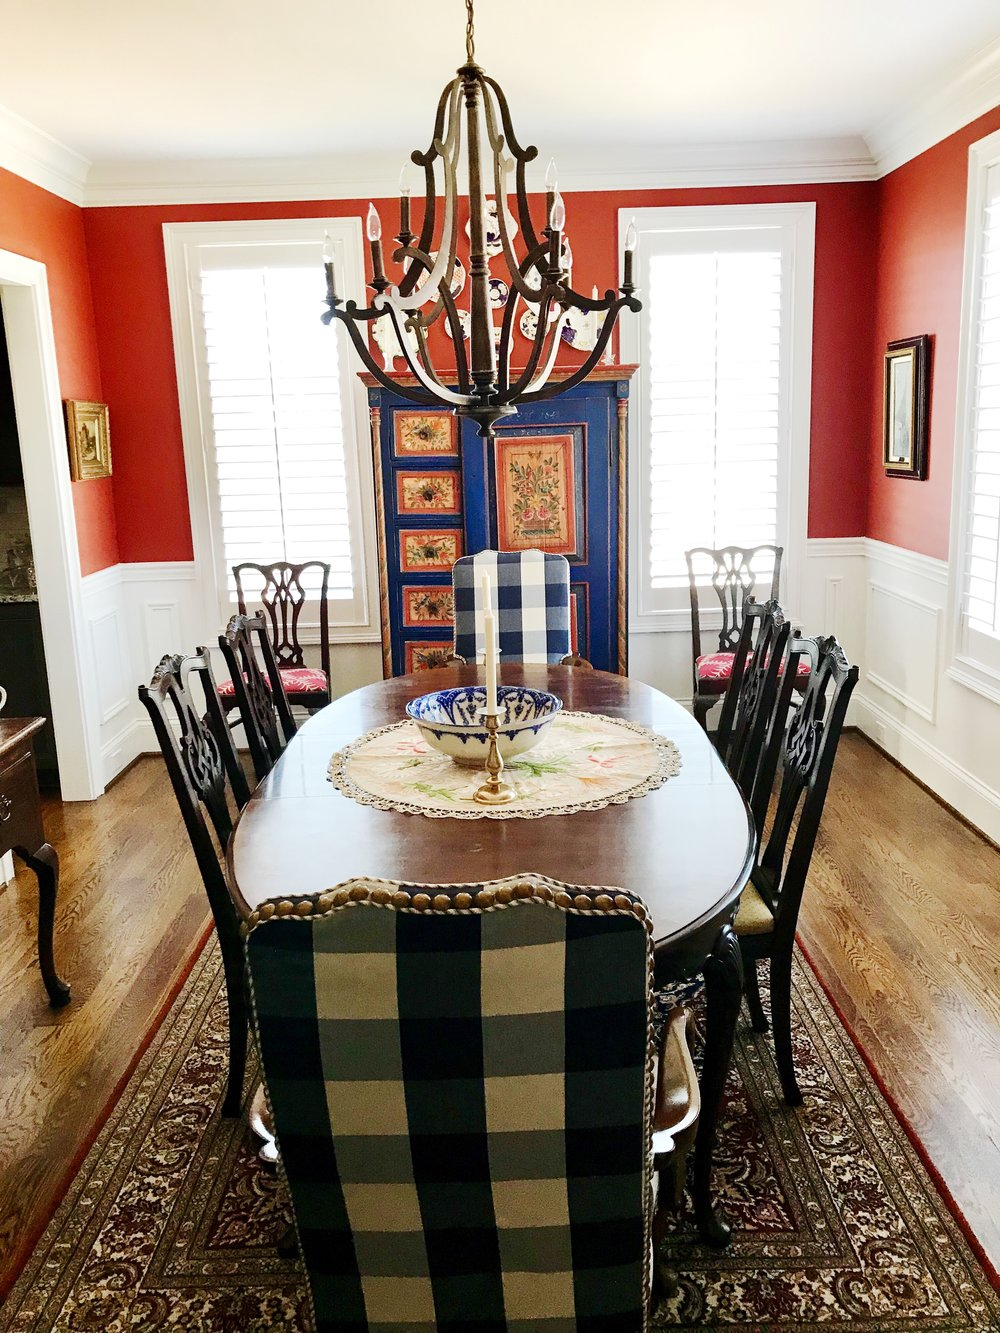 Formal dining room with an AMAZING German folk art cupboard circa 1843 at the head of the table